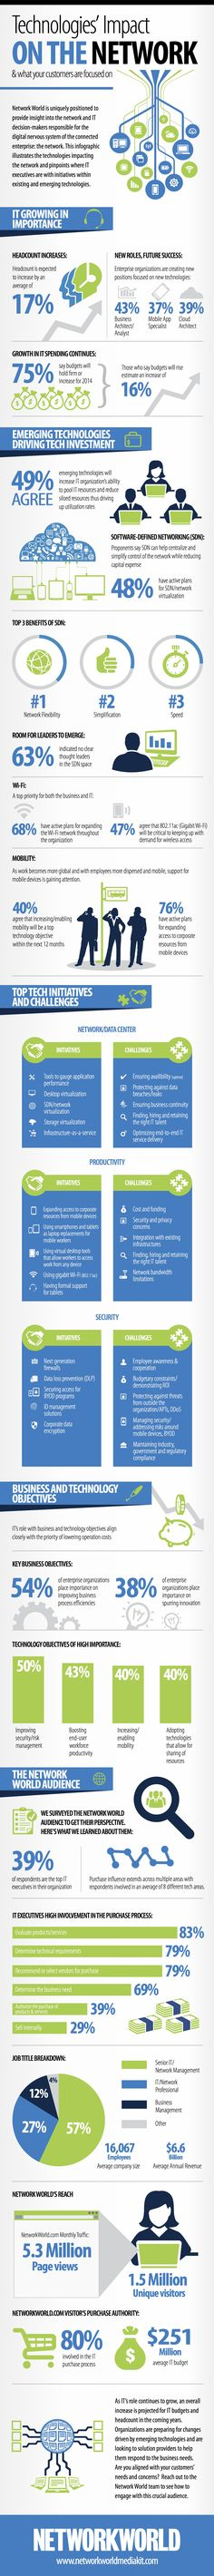 NetworkWorld Tech Impact Infographic1 copy Infographic: Technologies' Impact on the Network